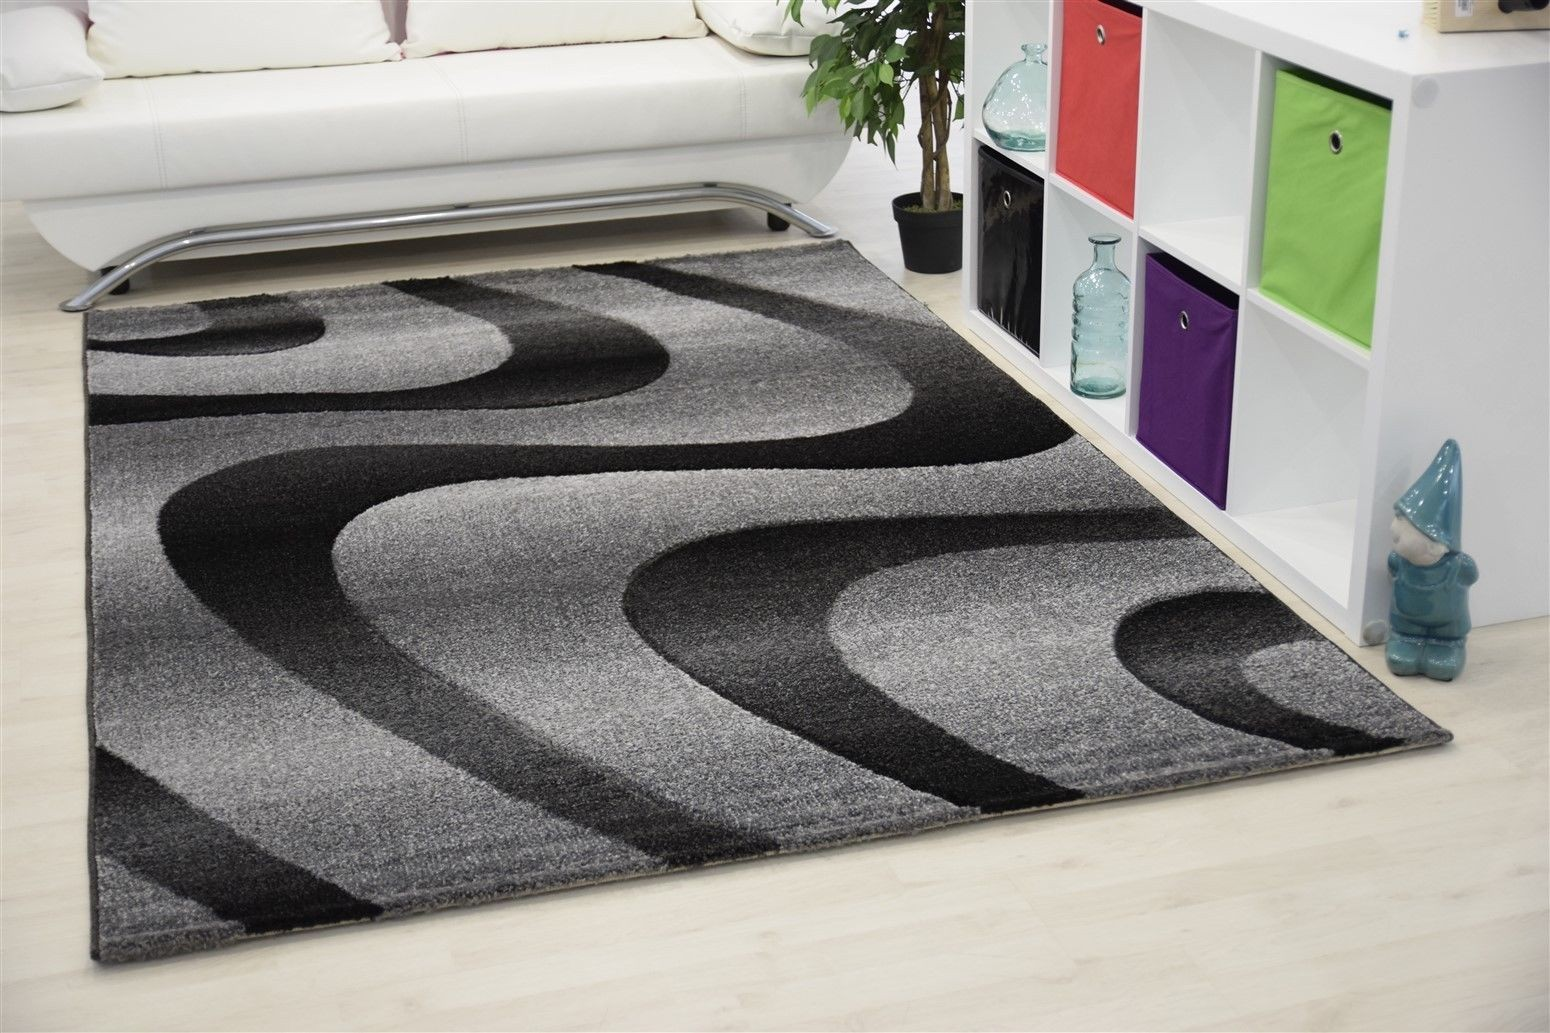 Tapis salon moderne pas cher maison design for Tapis pour salon